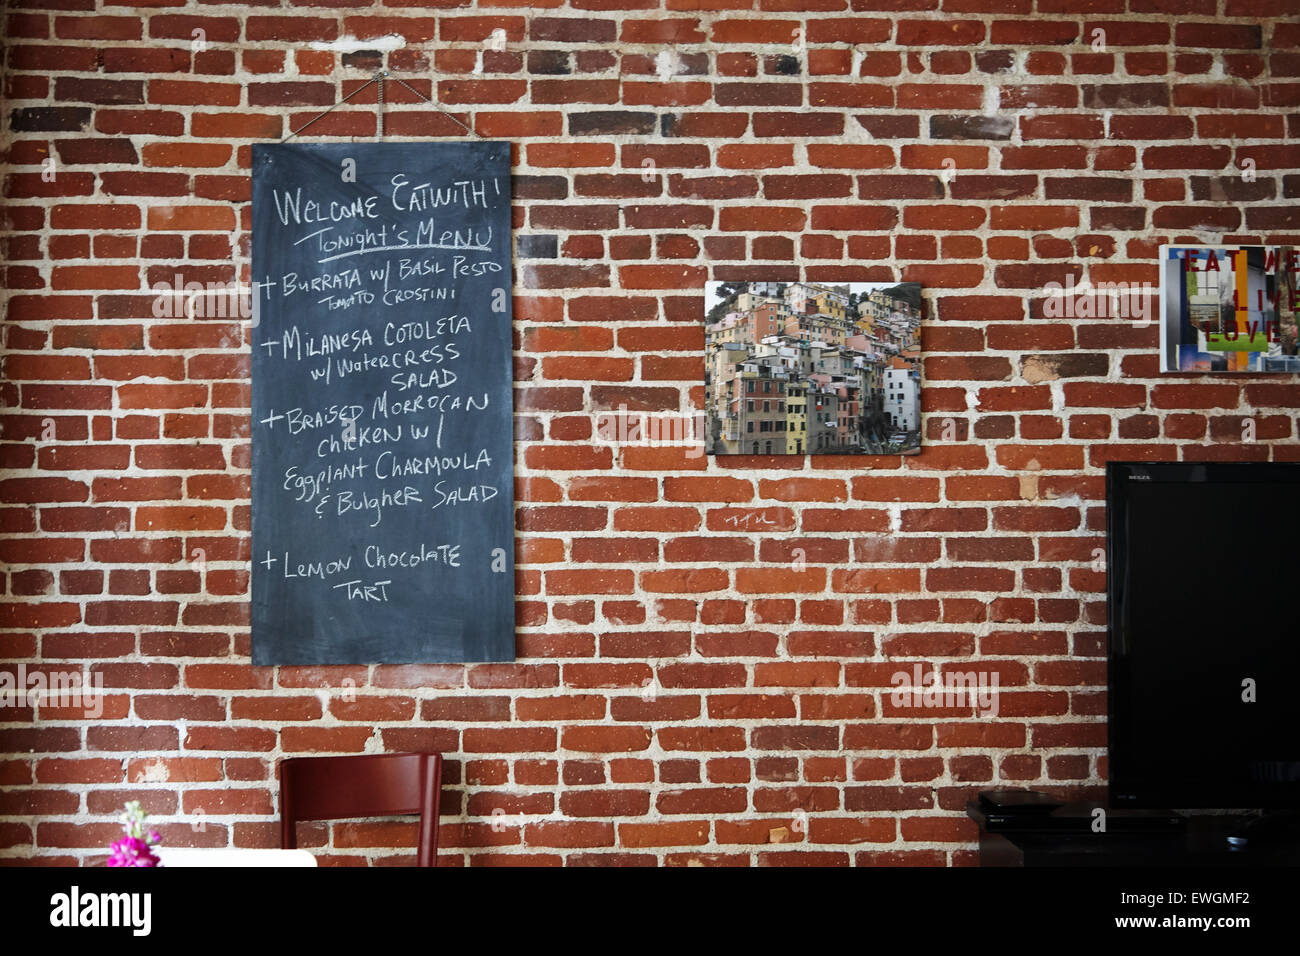 Red brick wall with chalk board menu - Stock Image